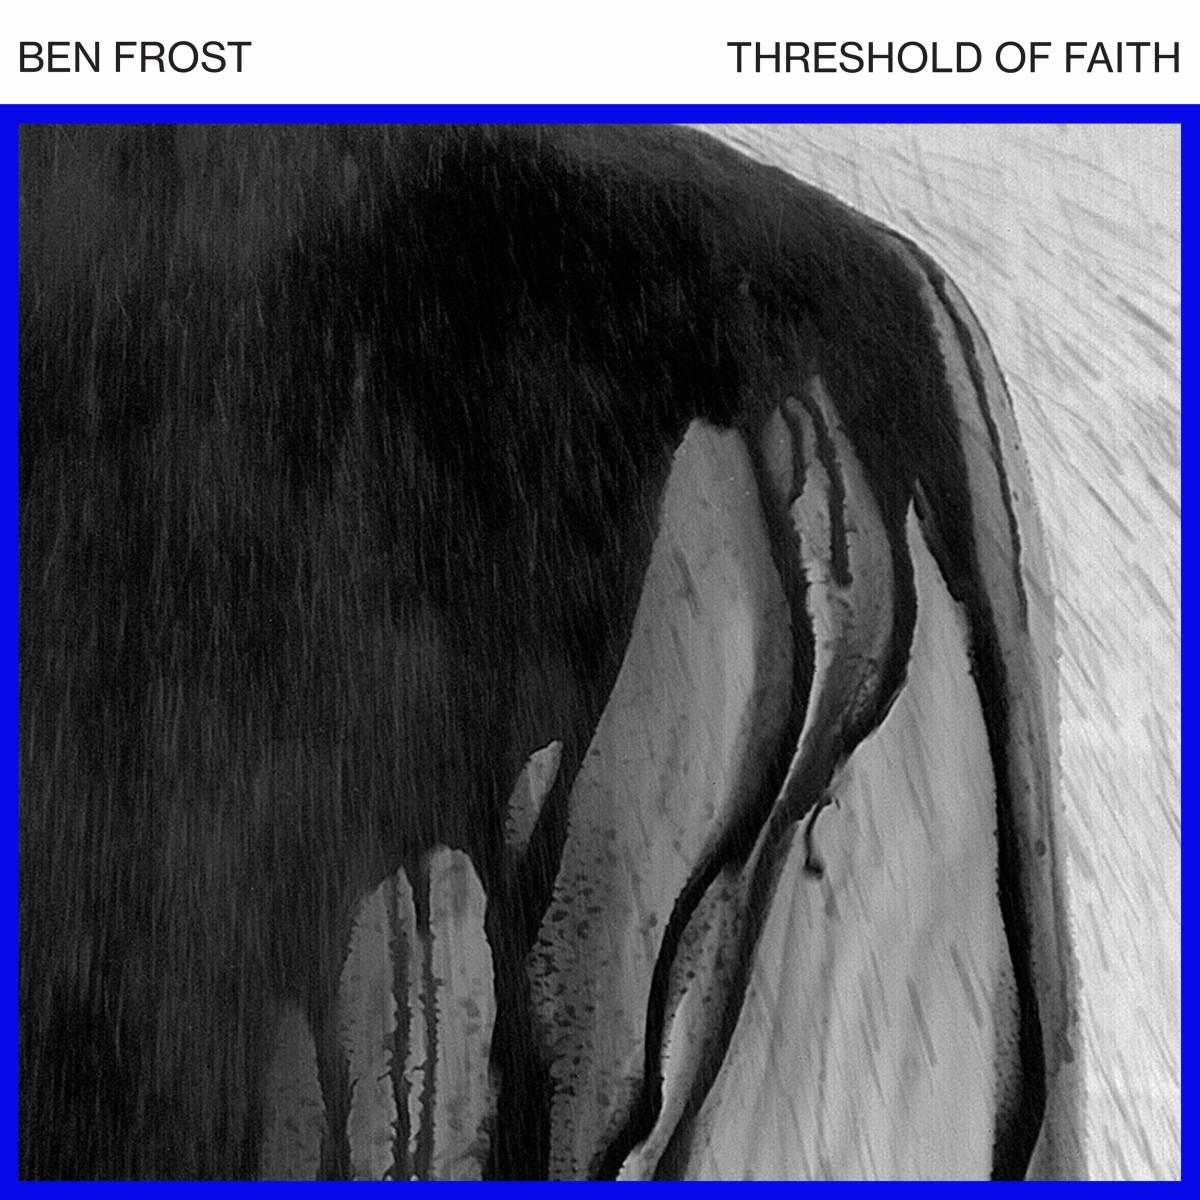 Ben Frost Threshold of Faith review